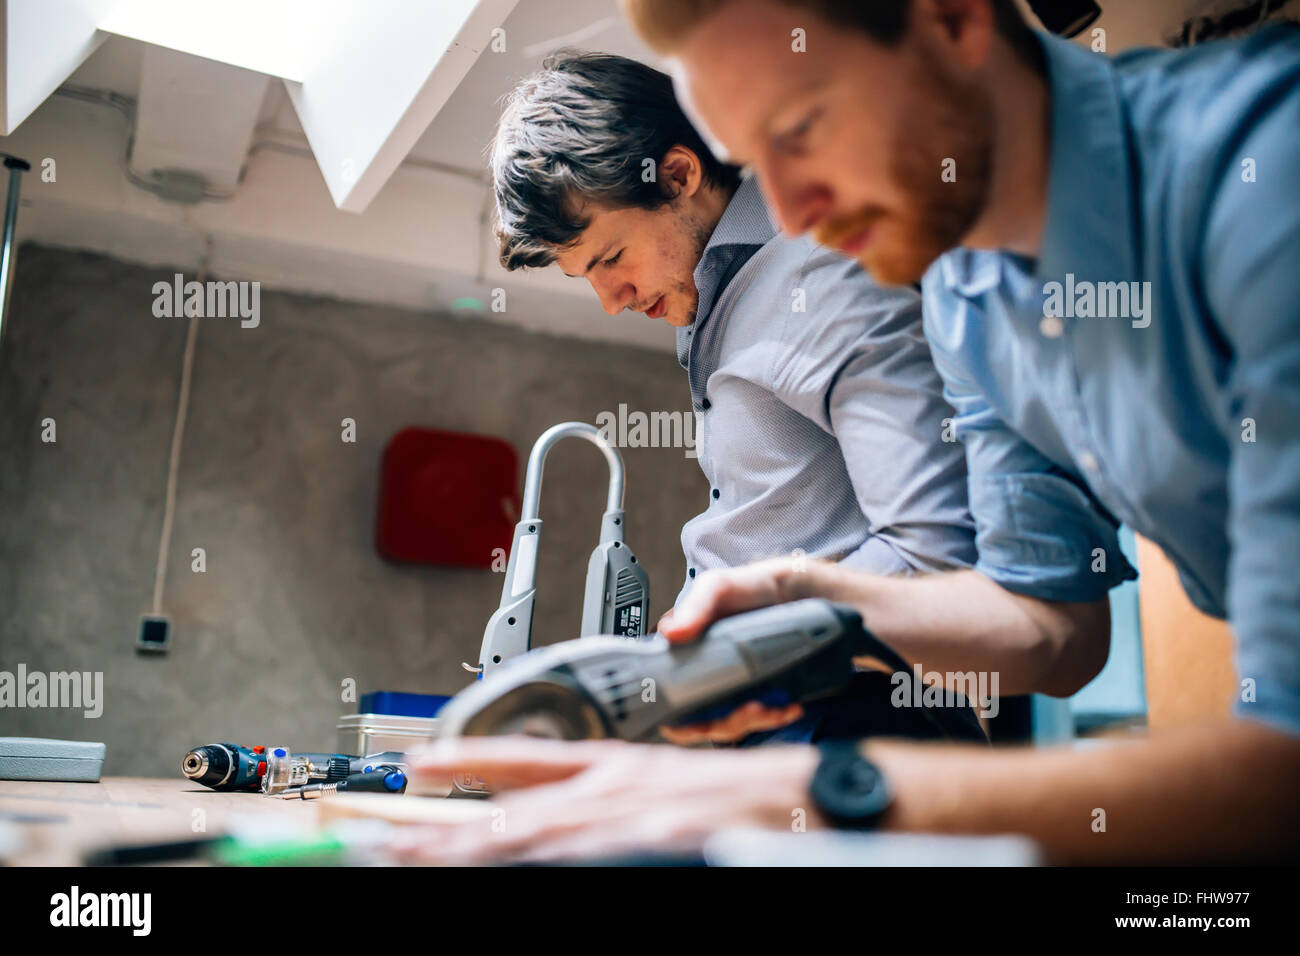 Joiners working with wood and being creative - Stock Image